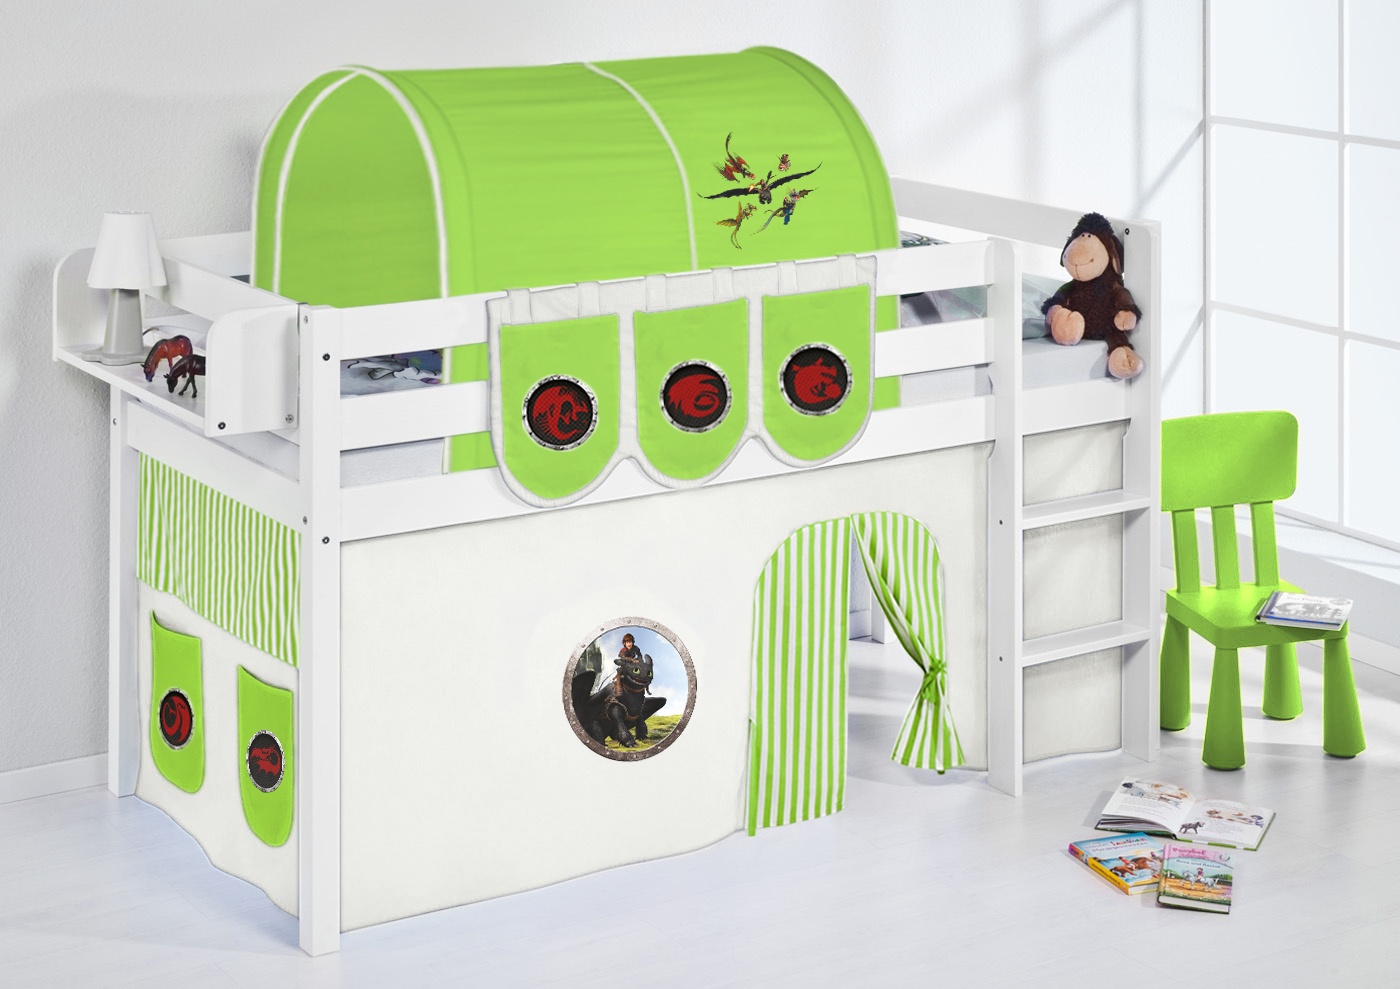 spielbett hochbett kinderbett jelle 190x90 weiss mit vorhang lilokids ebay. Black Bedroom Furniture Sets. Home Design Ideas